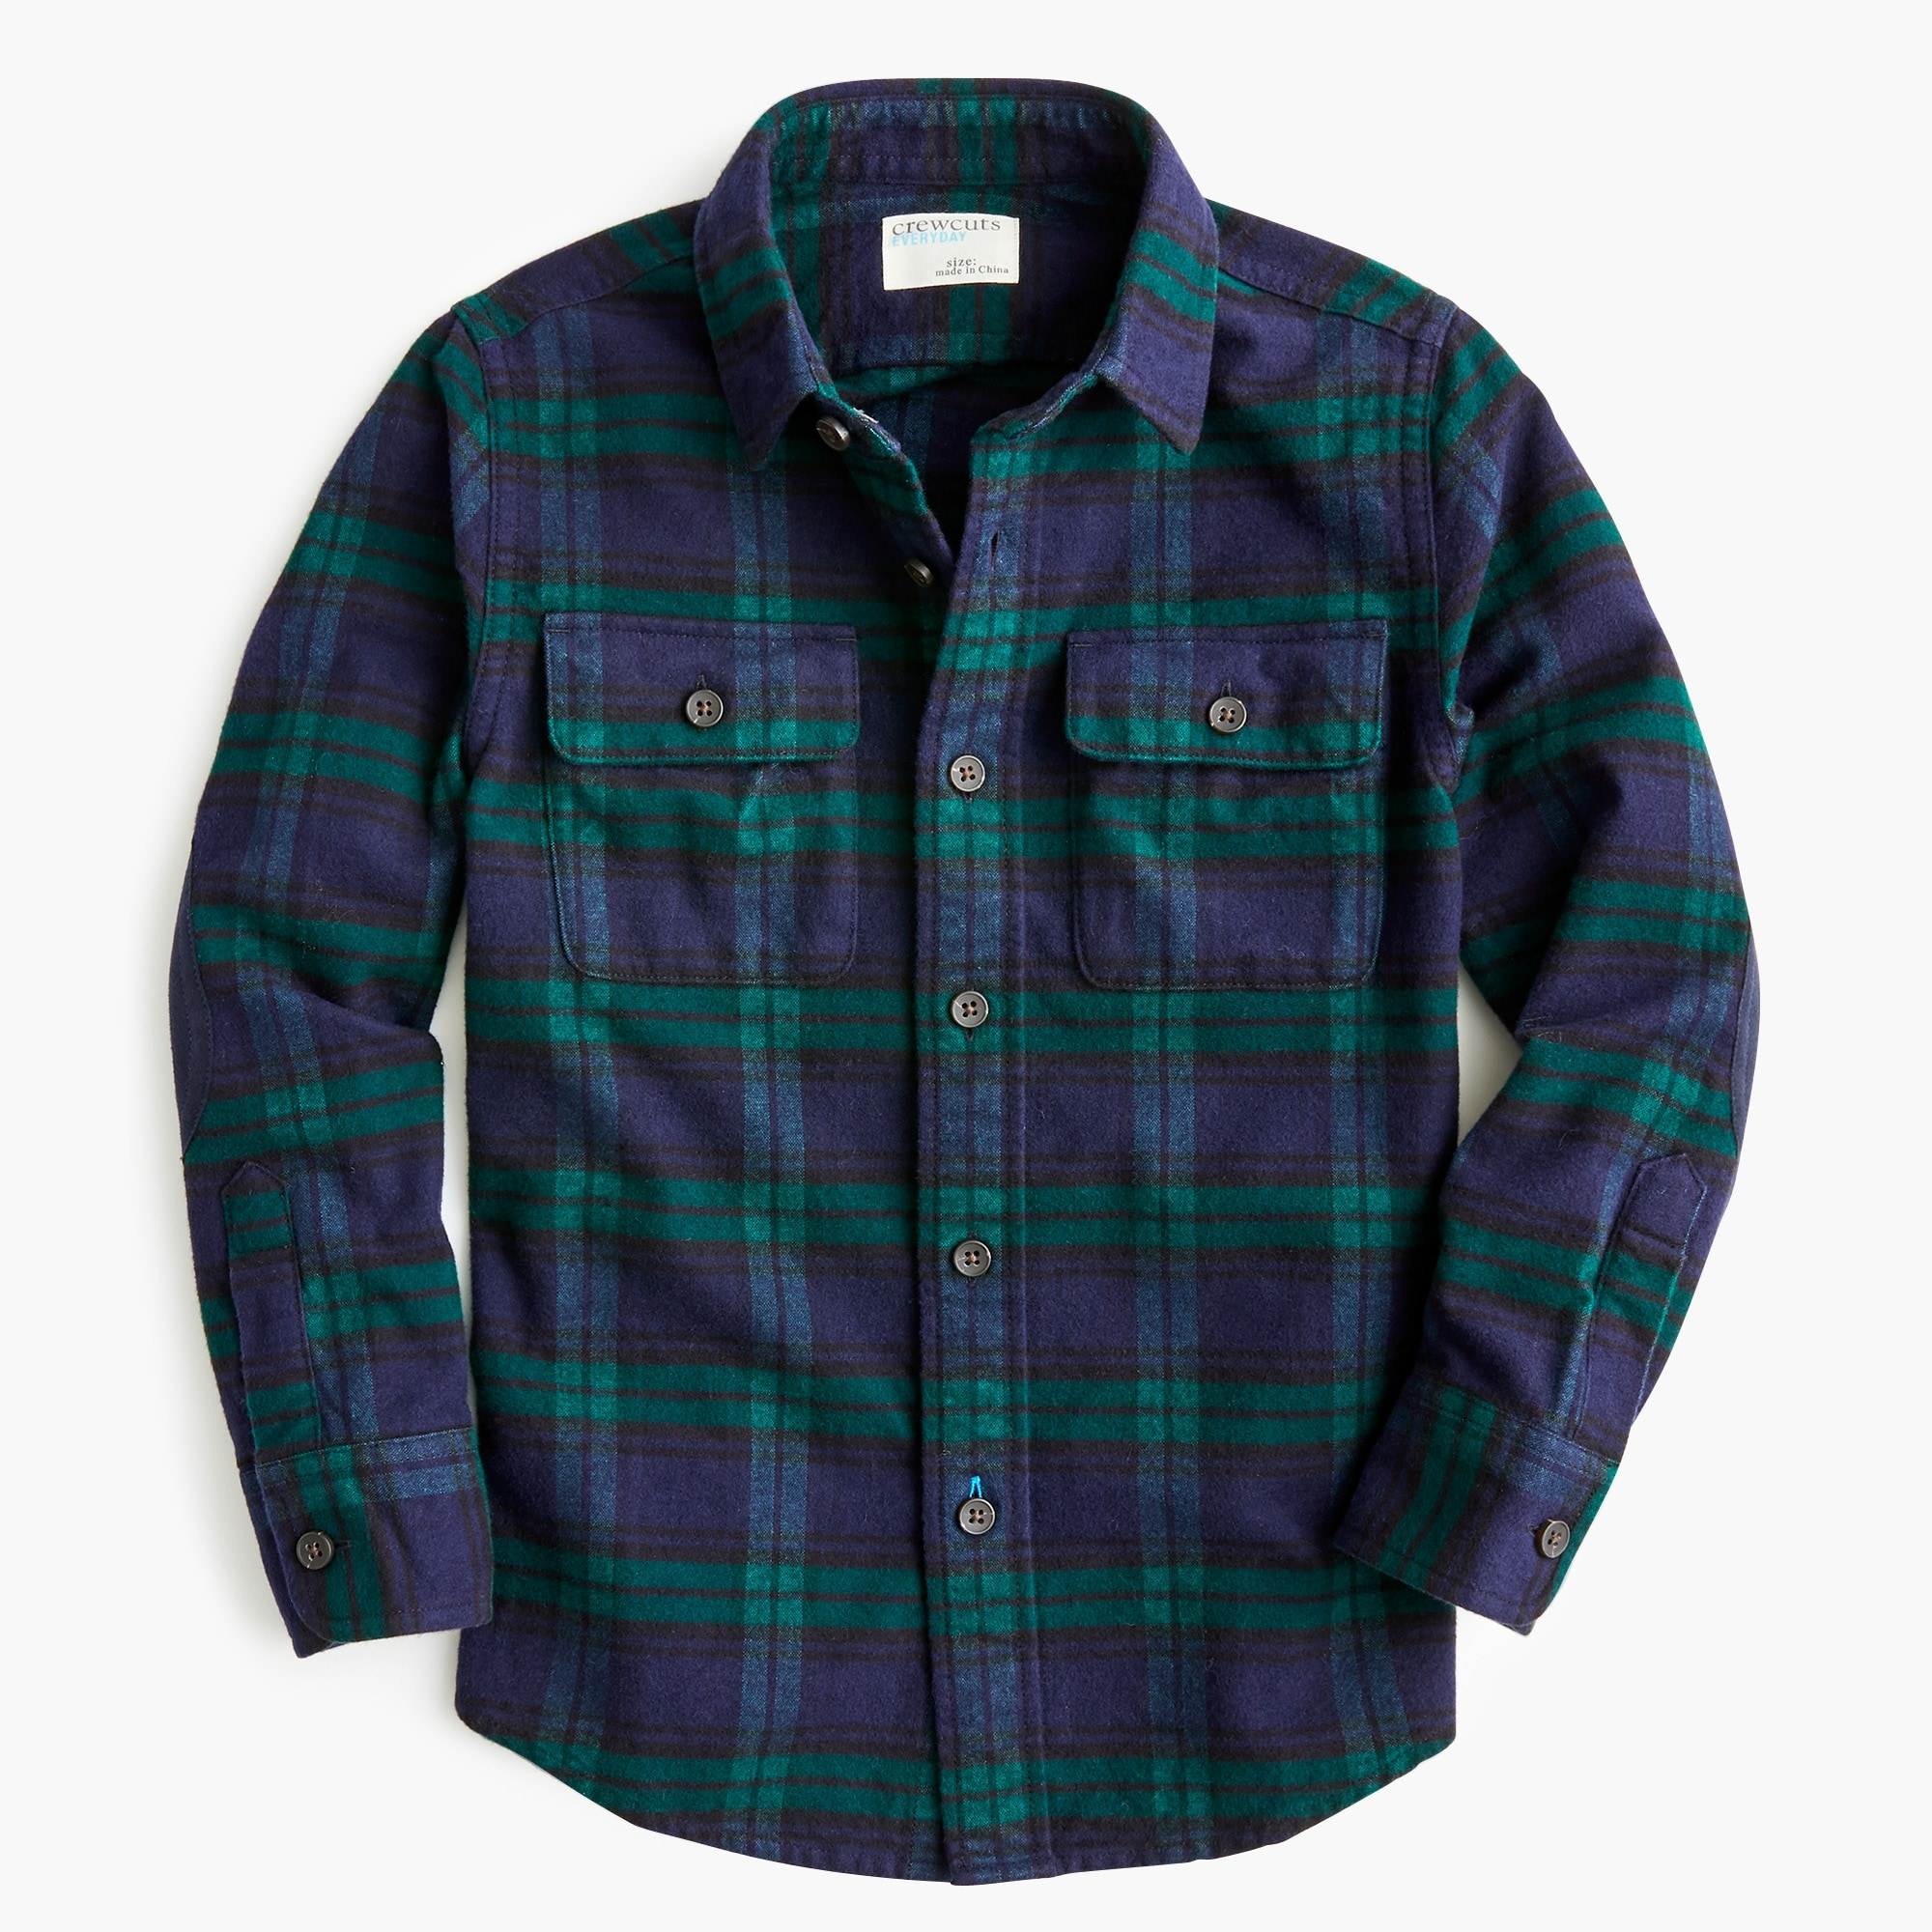 boys Boys' chamois shirt in black watch plaid